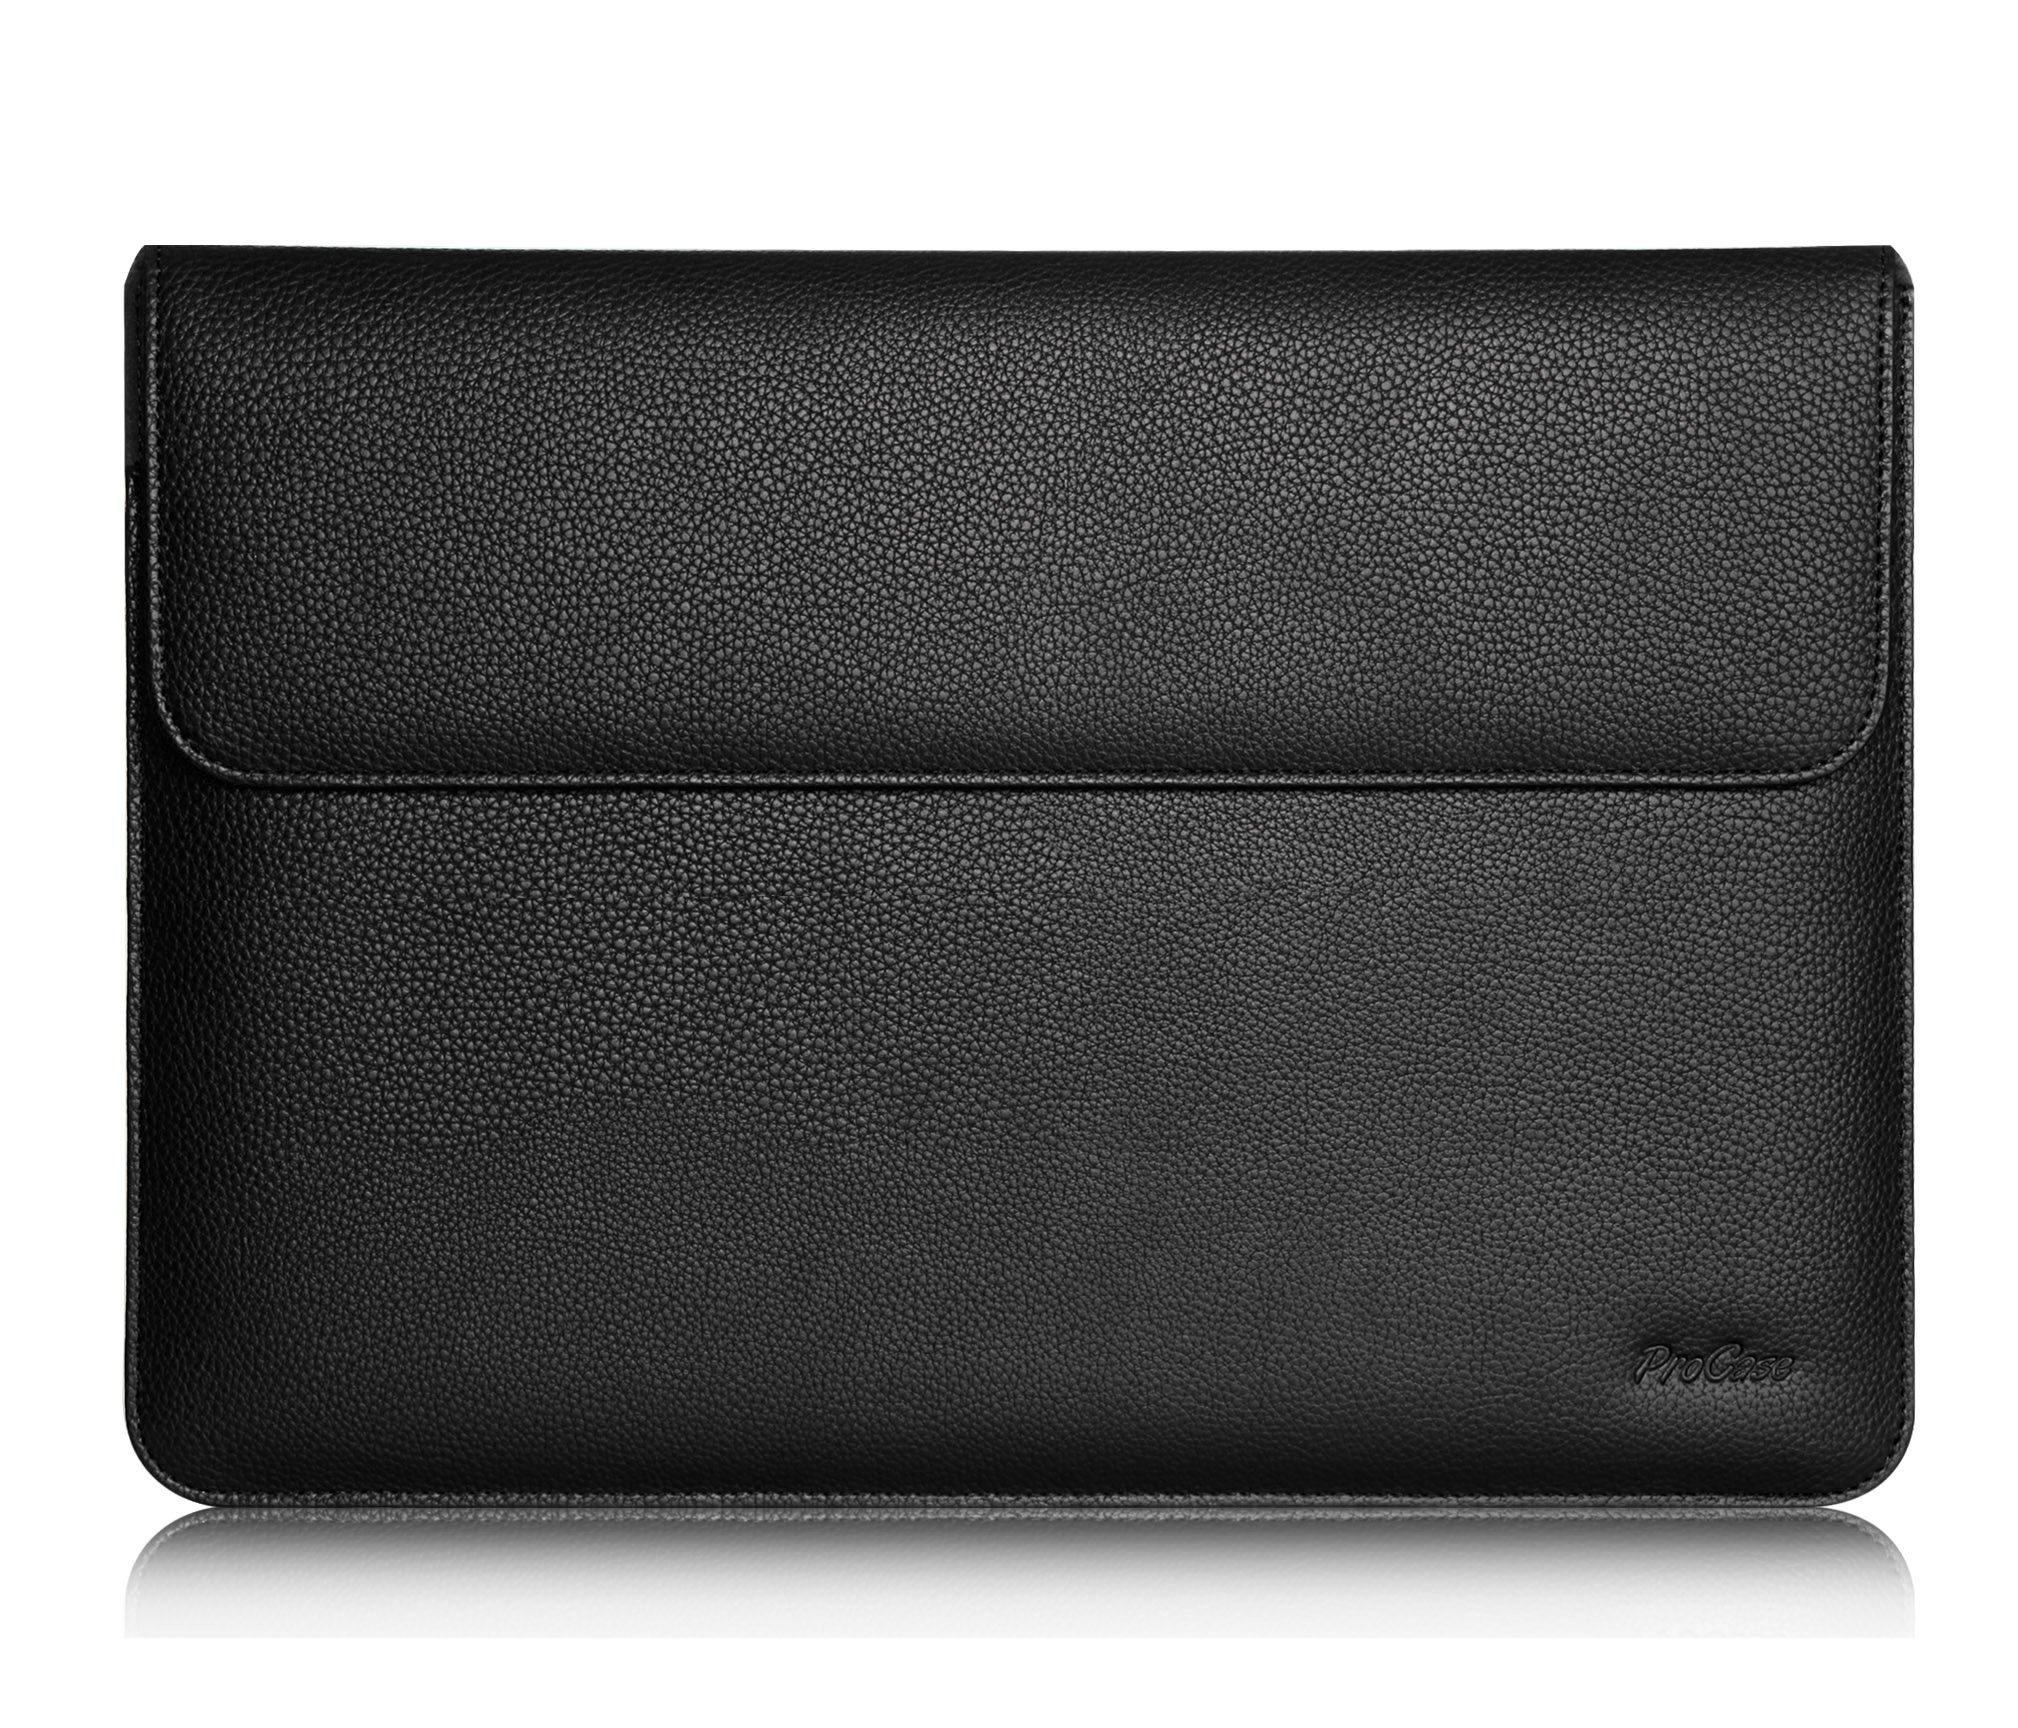 ProCase 9.7-10.5 Inch Wallet Sleeve Case for iPad Air 10.5 2019, iPad 9.7'', iPad Pro 10.5, iPad Pro 9.7, iPad Air/Air 2, Samsung Galaxy Tab S3 S2 9.7/Tab A 10.1, Document Pocket and Pen Holder (Black) by ProCase